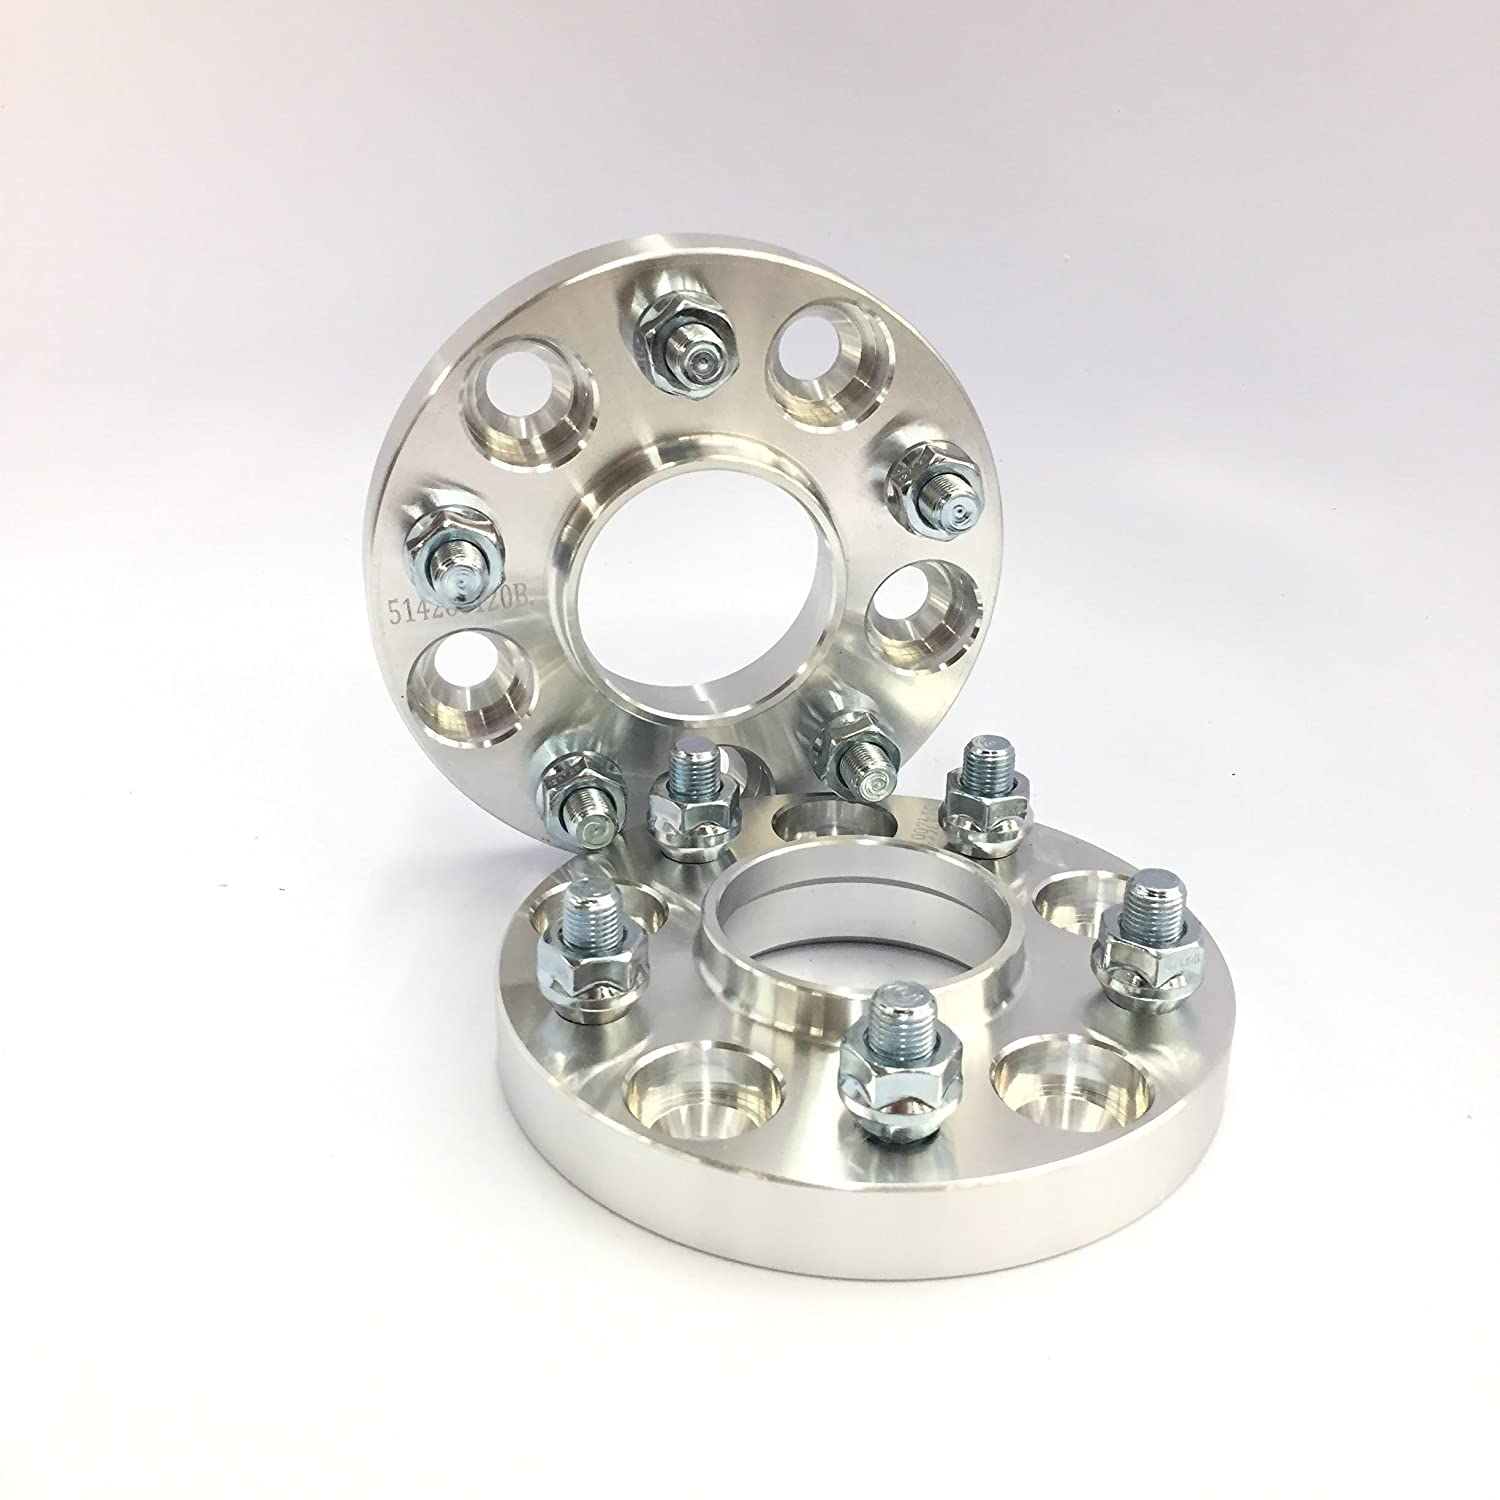 2 Pieces 0.787 20mm Hub Centric Wheel Spacers Bolt Pattern 5x114.3 5x4.5 25//32 Center Bore 67.1mm Thread Pitch 12x1.5 Stud